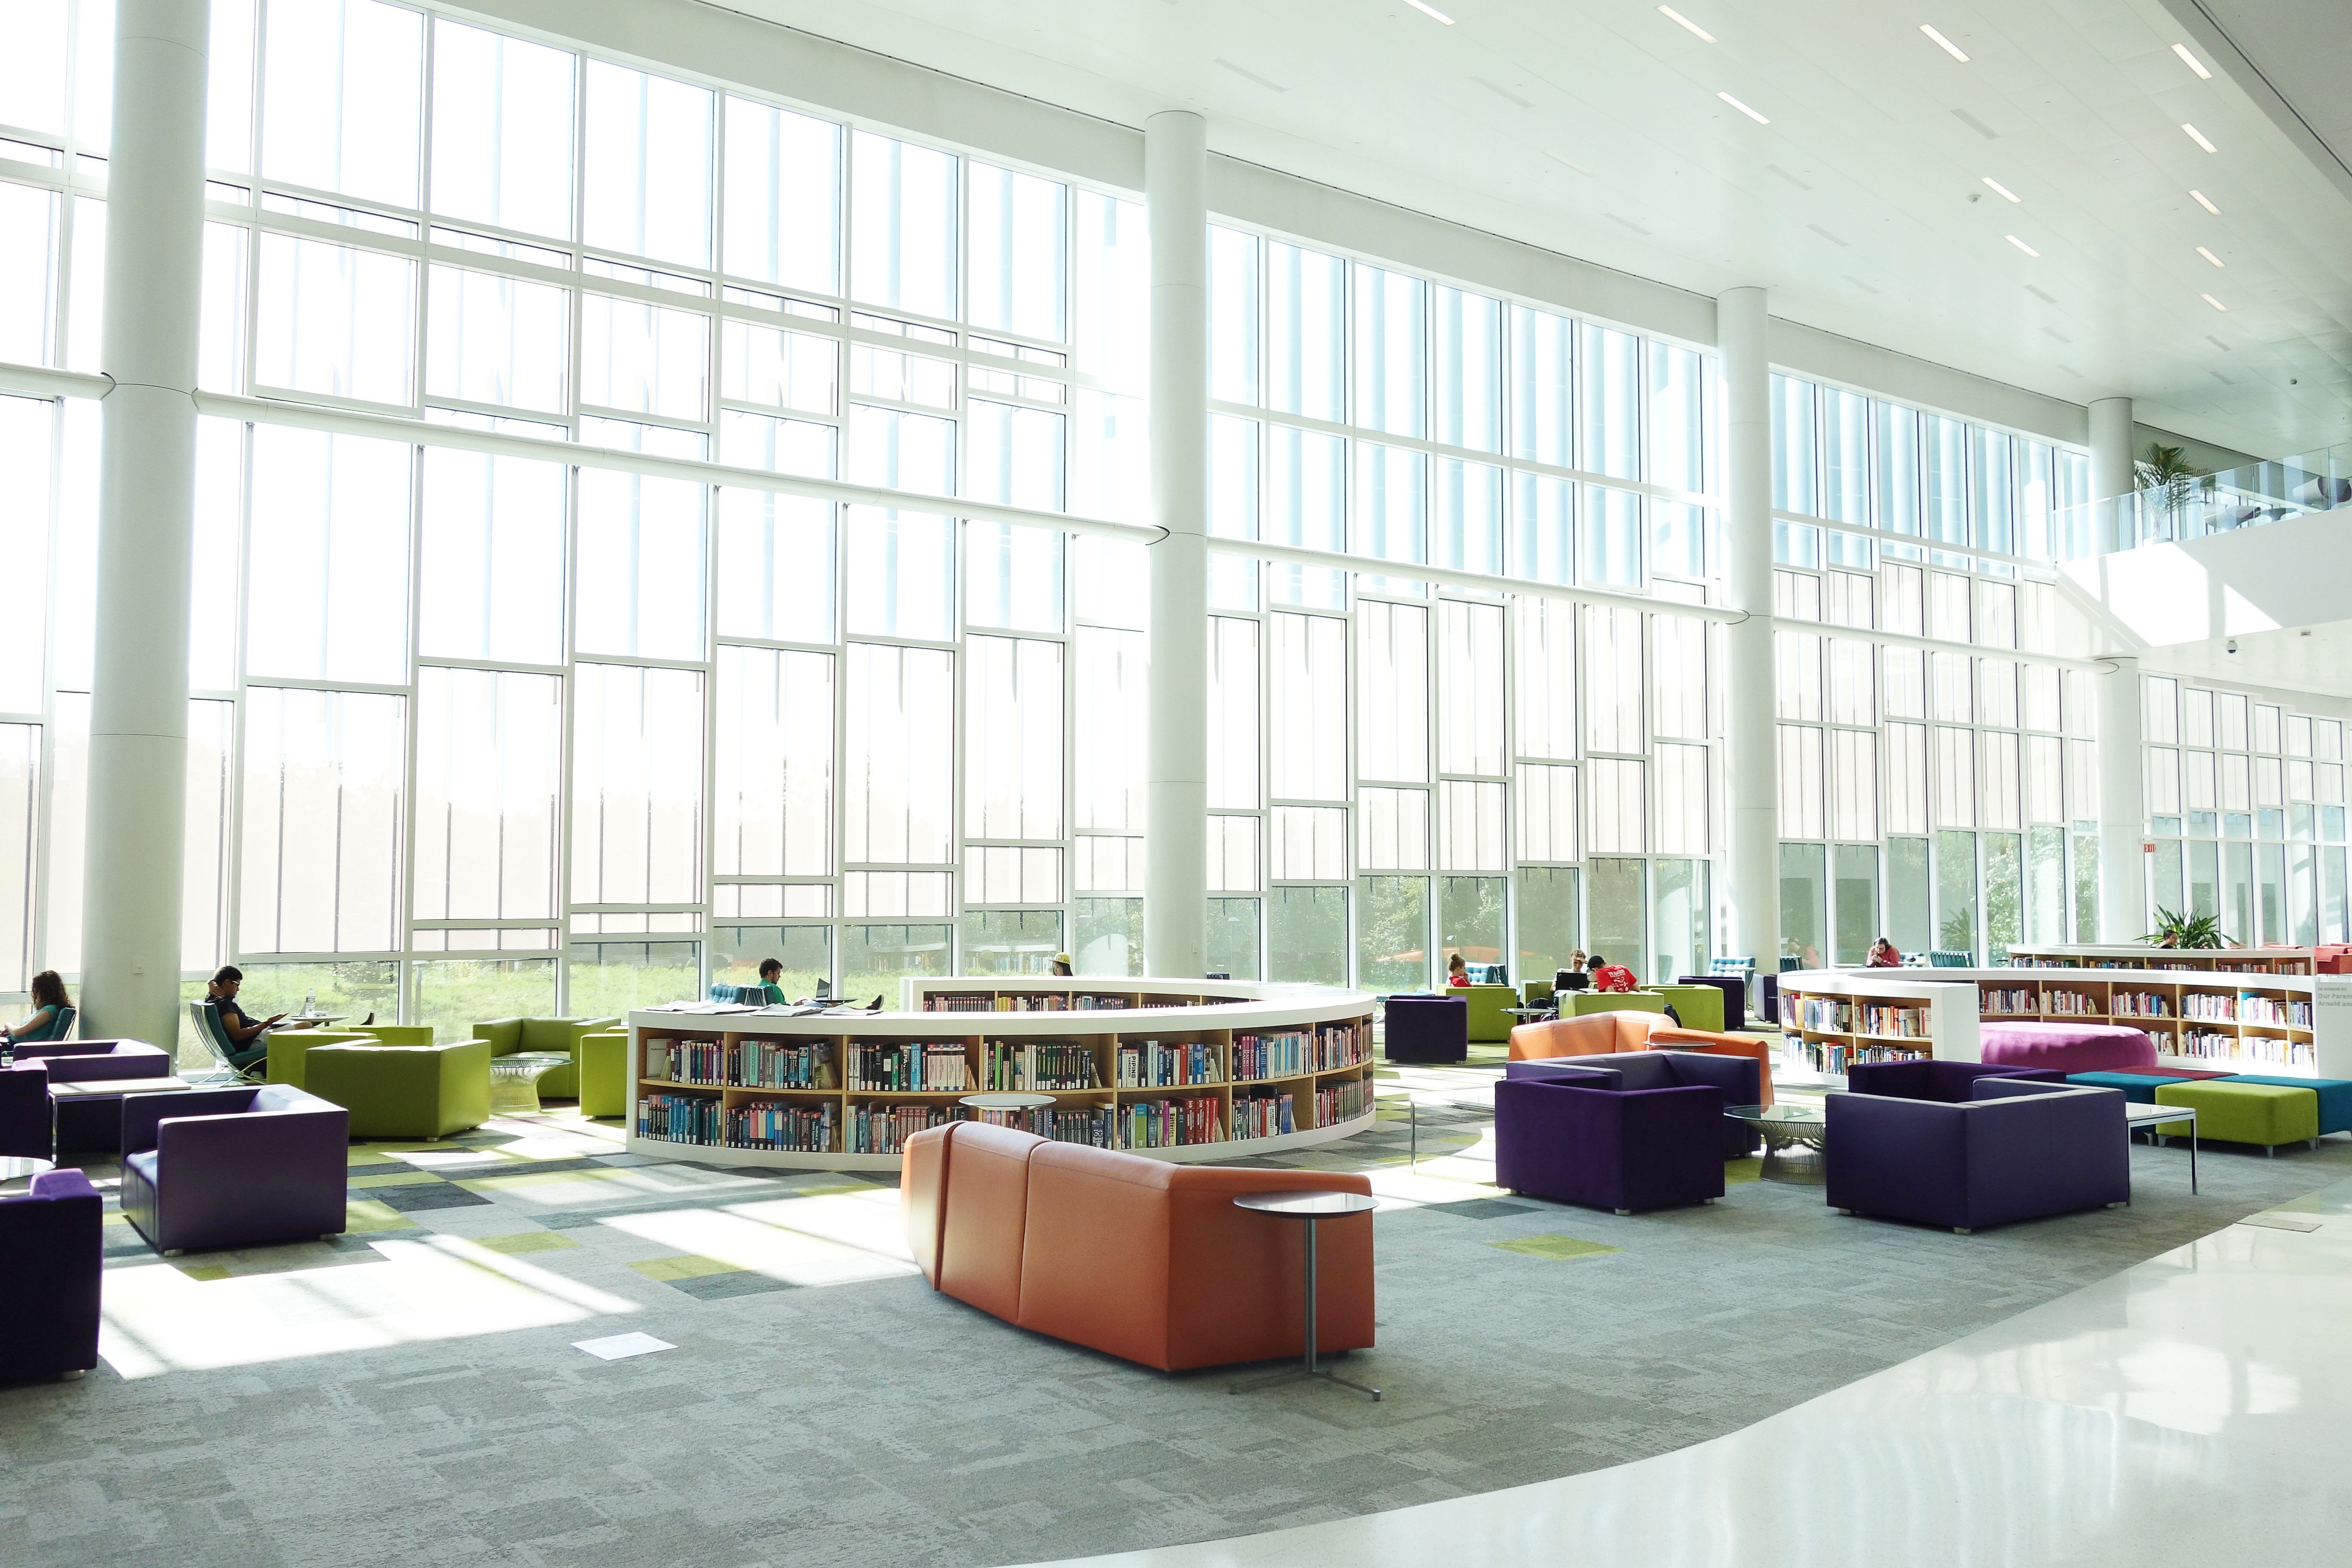 College library with bookshelves and large white windows